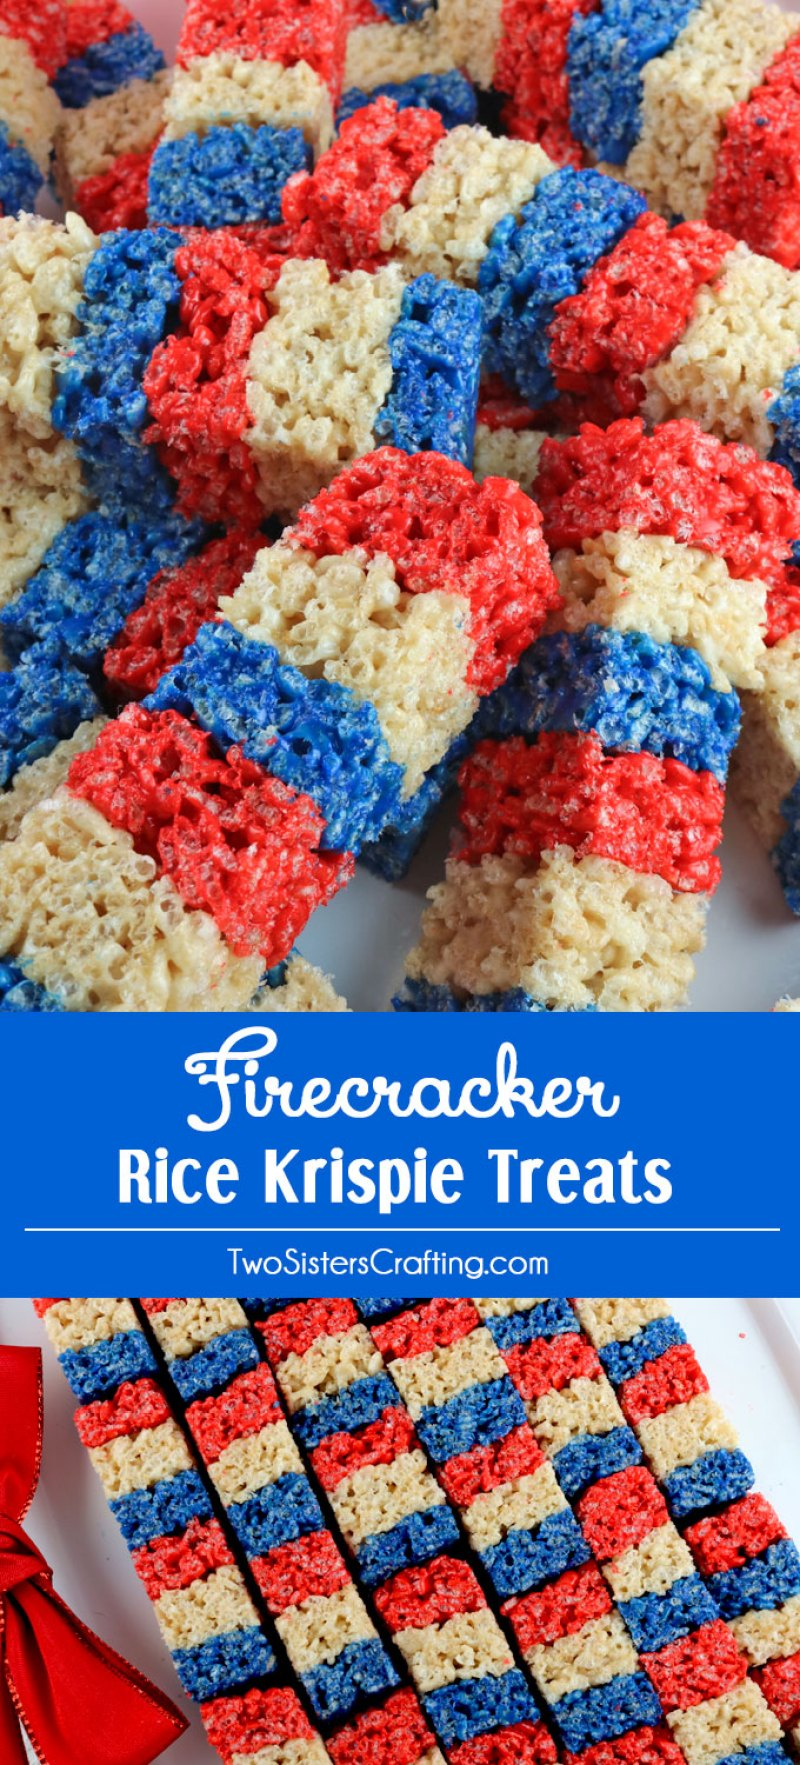 We've found 15 of the Best 4th of July Rice Krispie Treats.  Your friends and family at your Fourth of July party or summer family BBQ will love these Red White and Blue treats! These 15 yummy Patriotic Desserts are all amazing and gorgeous 4th of July treats.  Pin these easy to make Independence Day Rice Krispie Treats for later and follow us for more 4th of July Food Ideas.